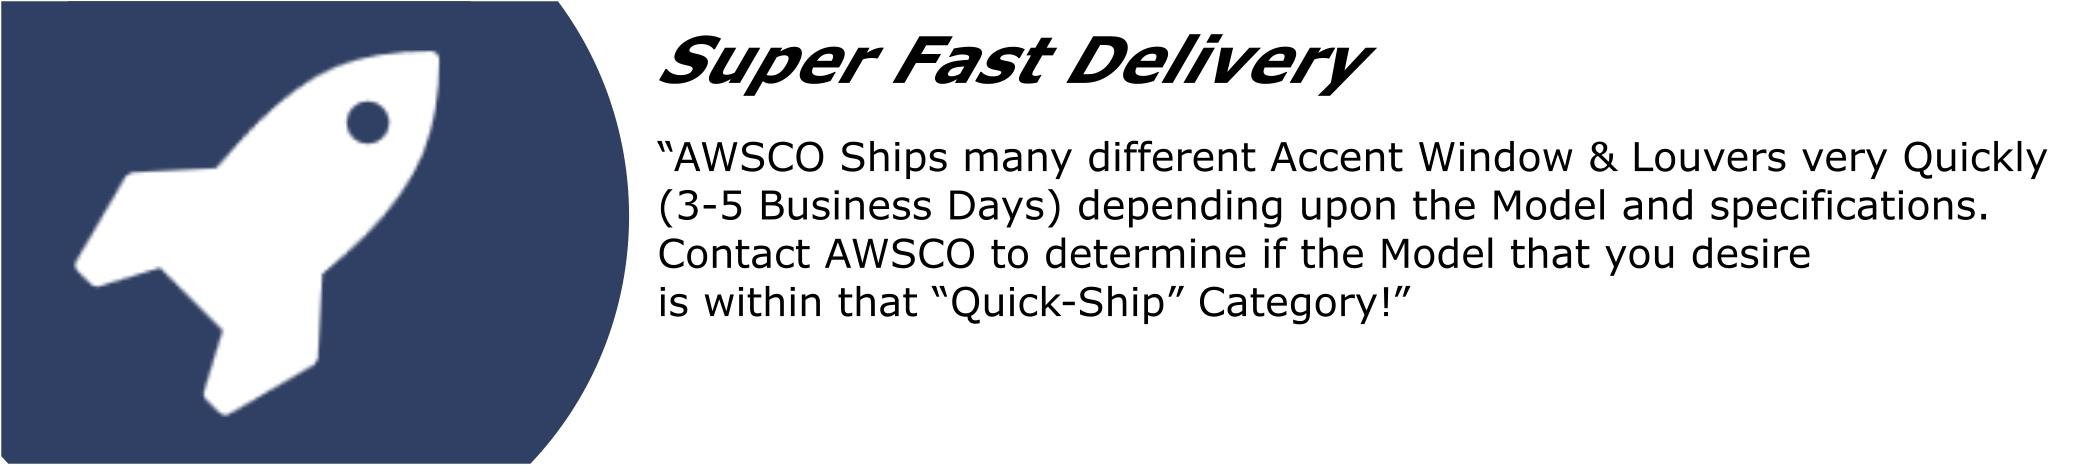 007 - SuperFastDelivery(Rev2.0)